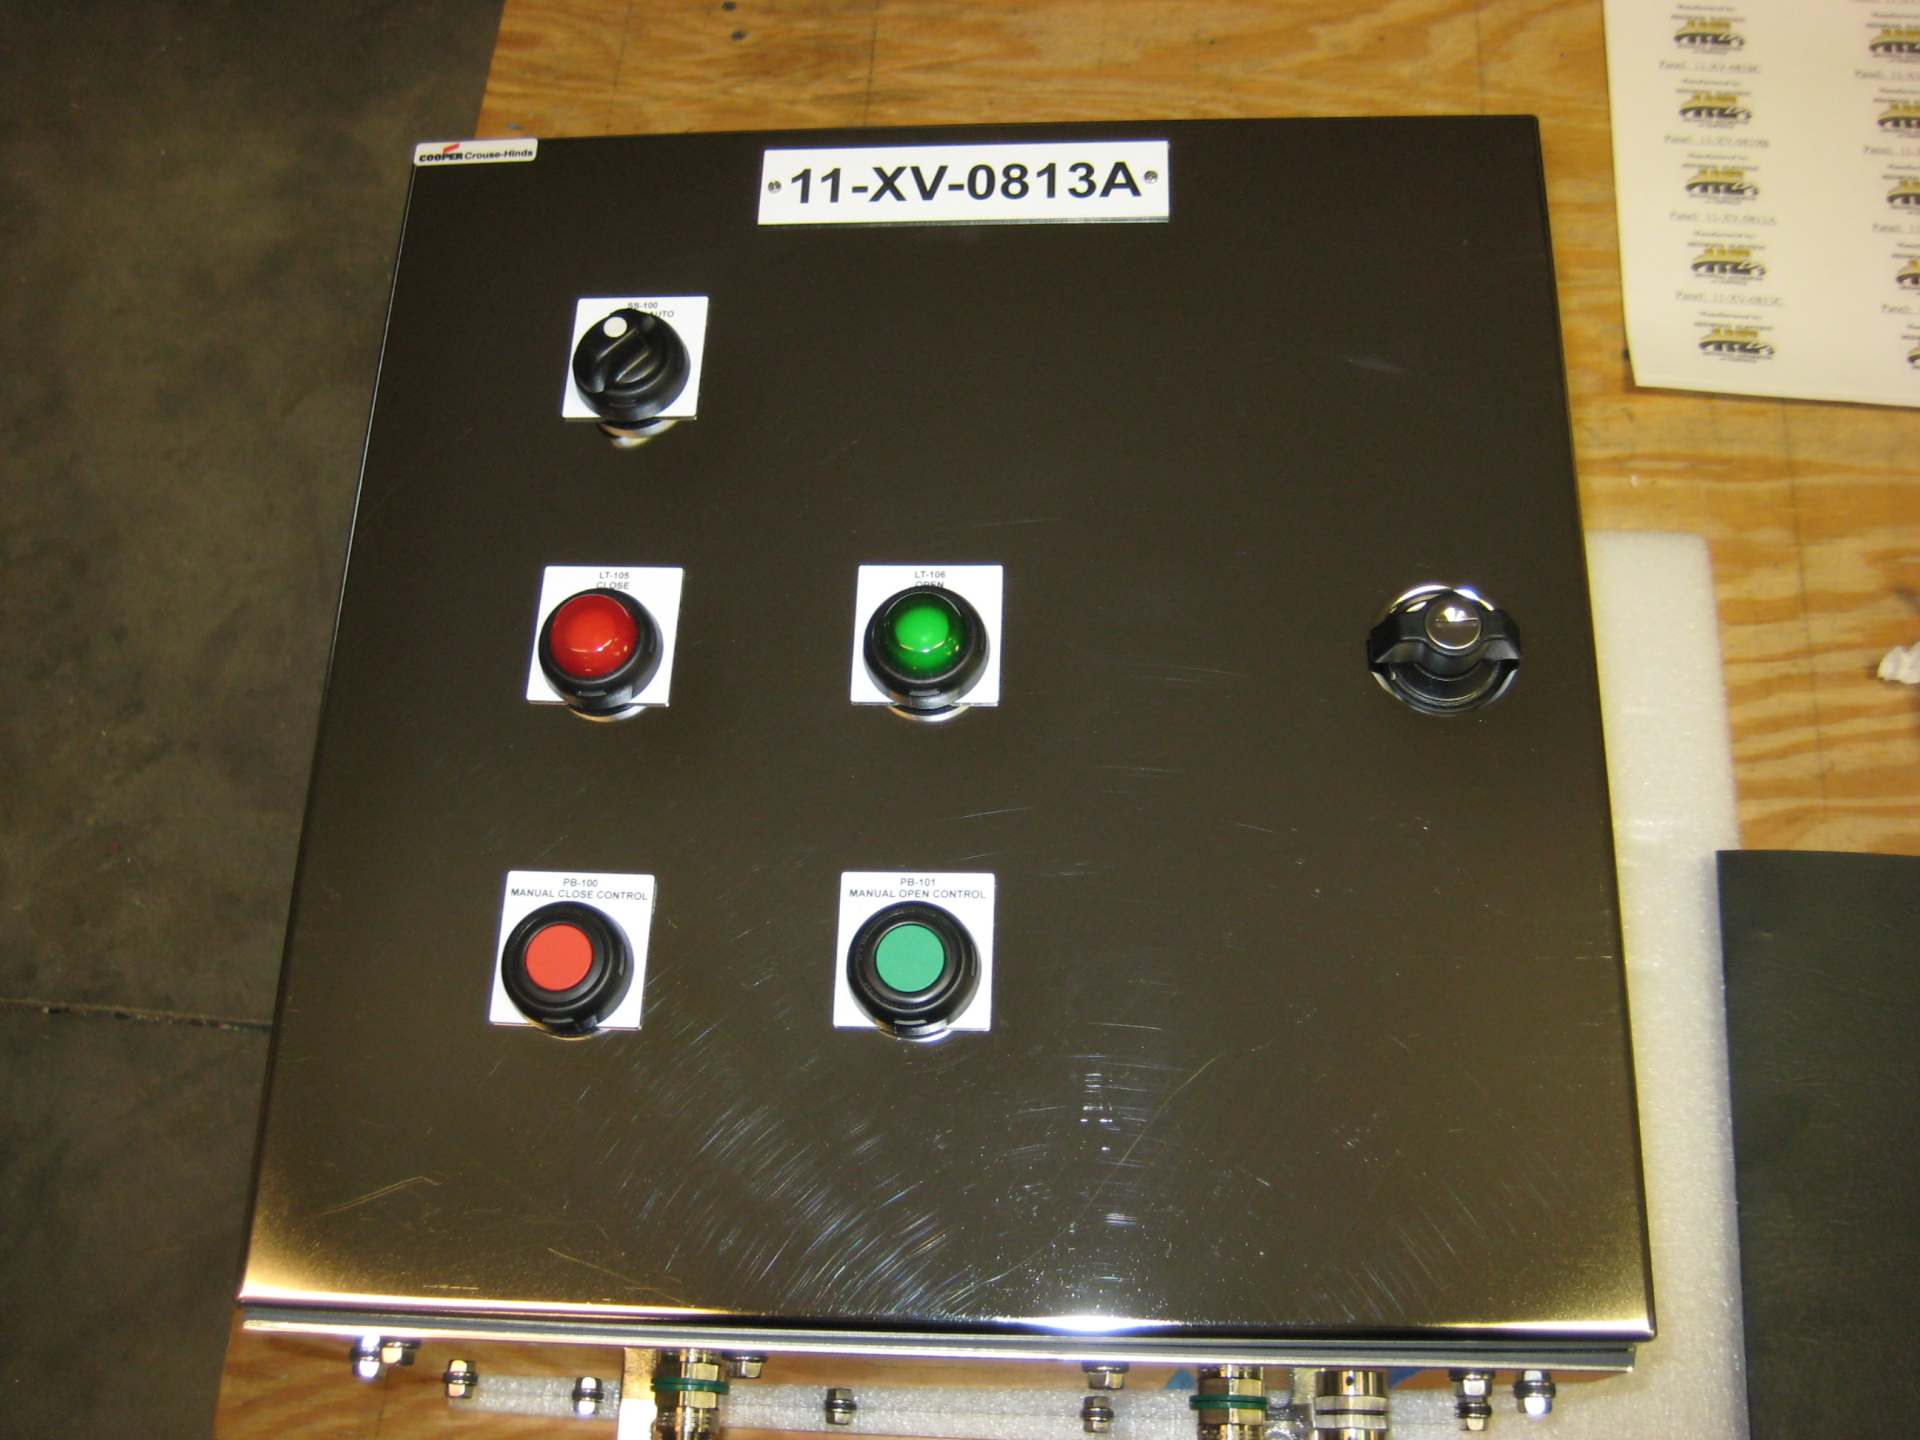 Hegwood Electric Industrial Automation Controls Panel Fabrication UL 508A CSA 698A, AB, Allen Bradley, Siemens, Square D, GE, Telemecanique, Hoffman, Rittal